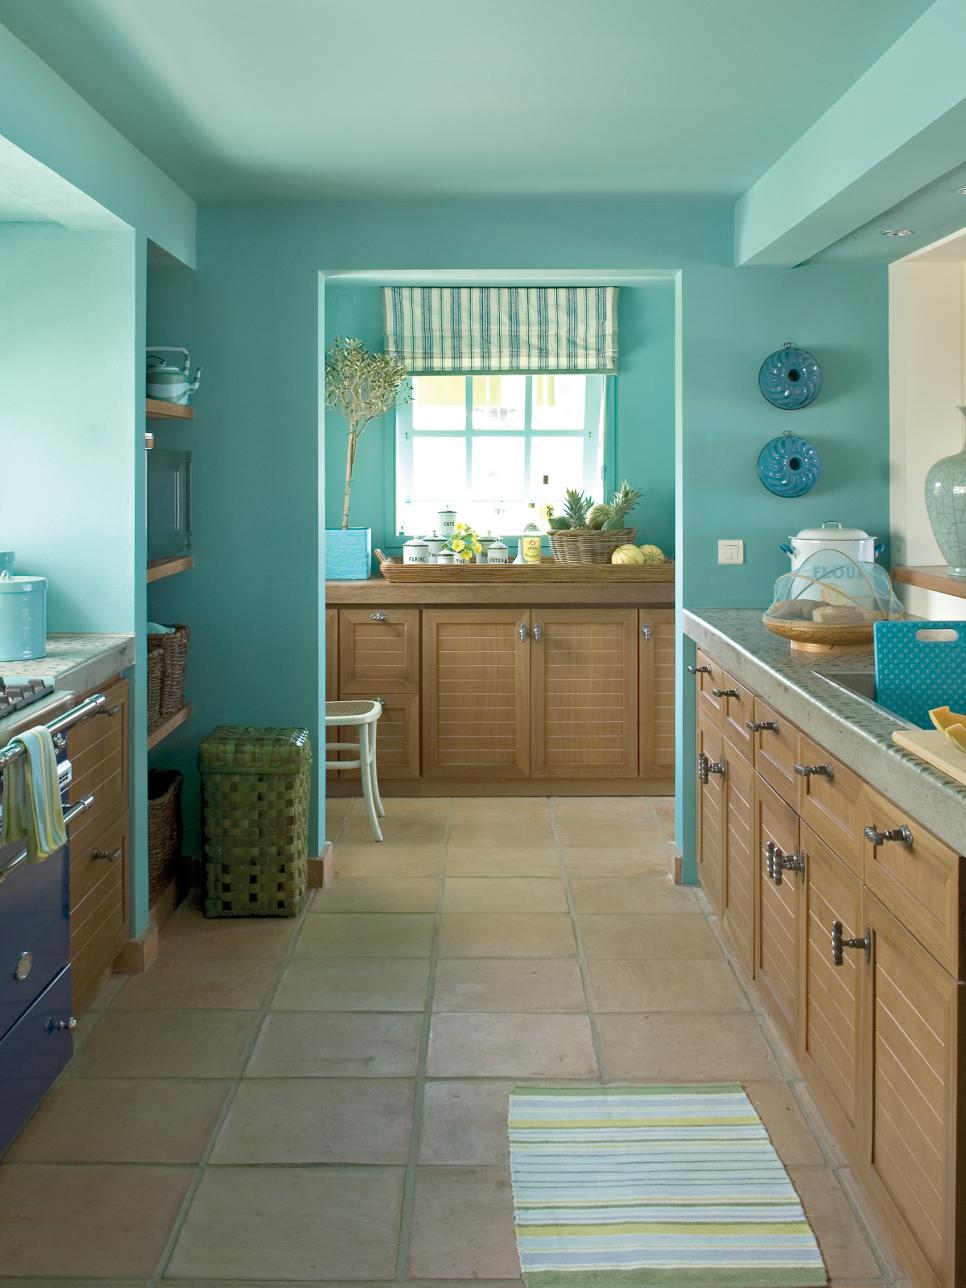 Tropical Blue Galley Kitchen With Tile Floor